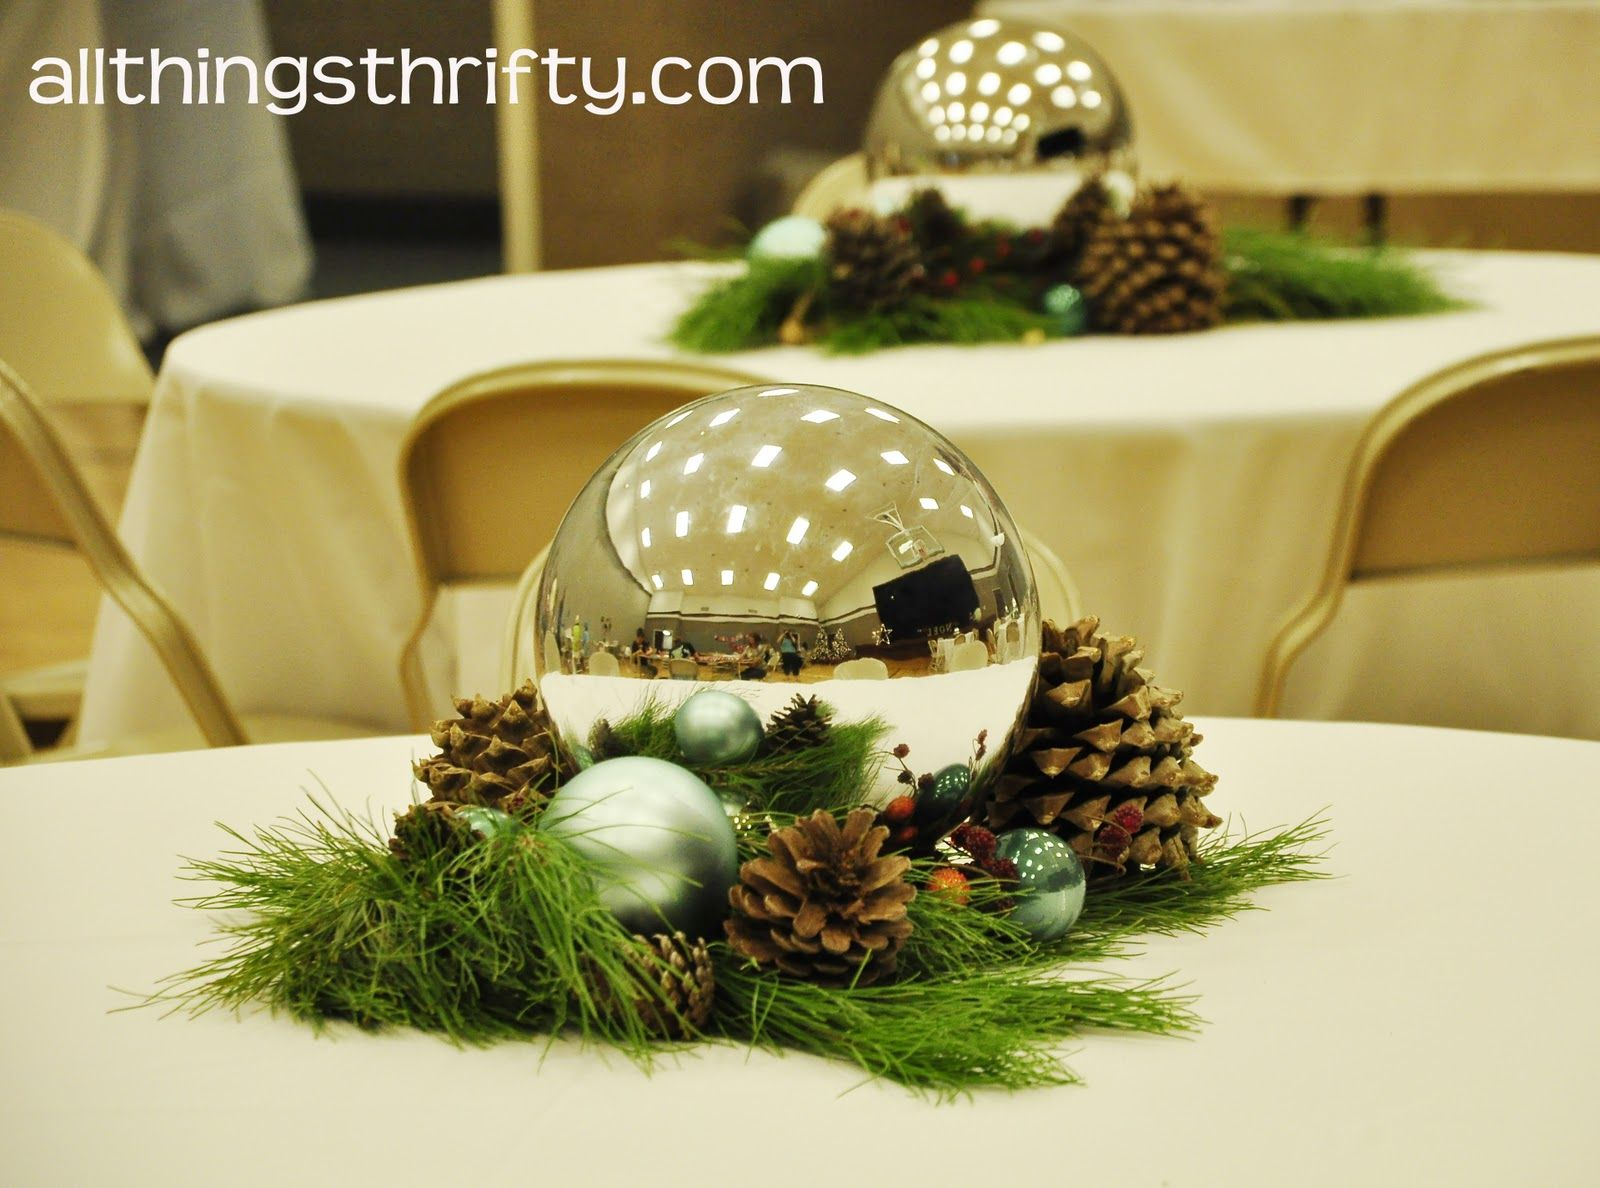 Christmas table decorations gold - House Design Attractive Christmas Table Centerpiece Easy Christmas Centerpiece Ideas All Things Thrifty Home House With Easy On The Eye Gold Bells